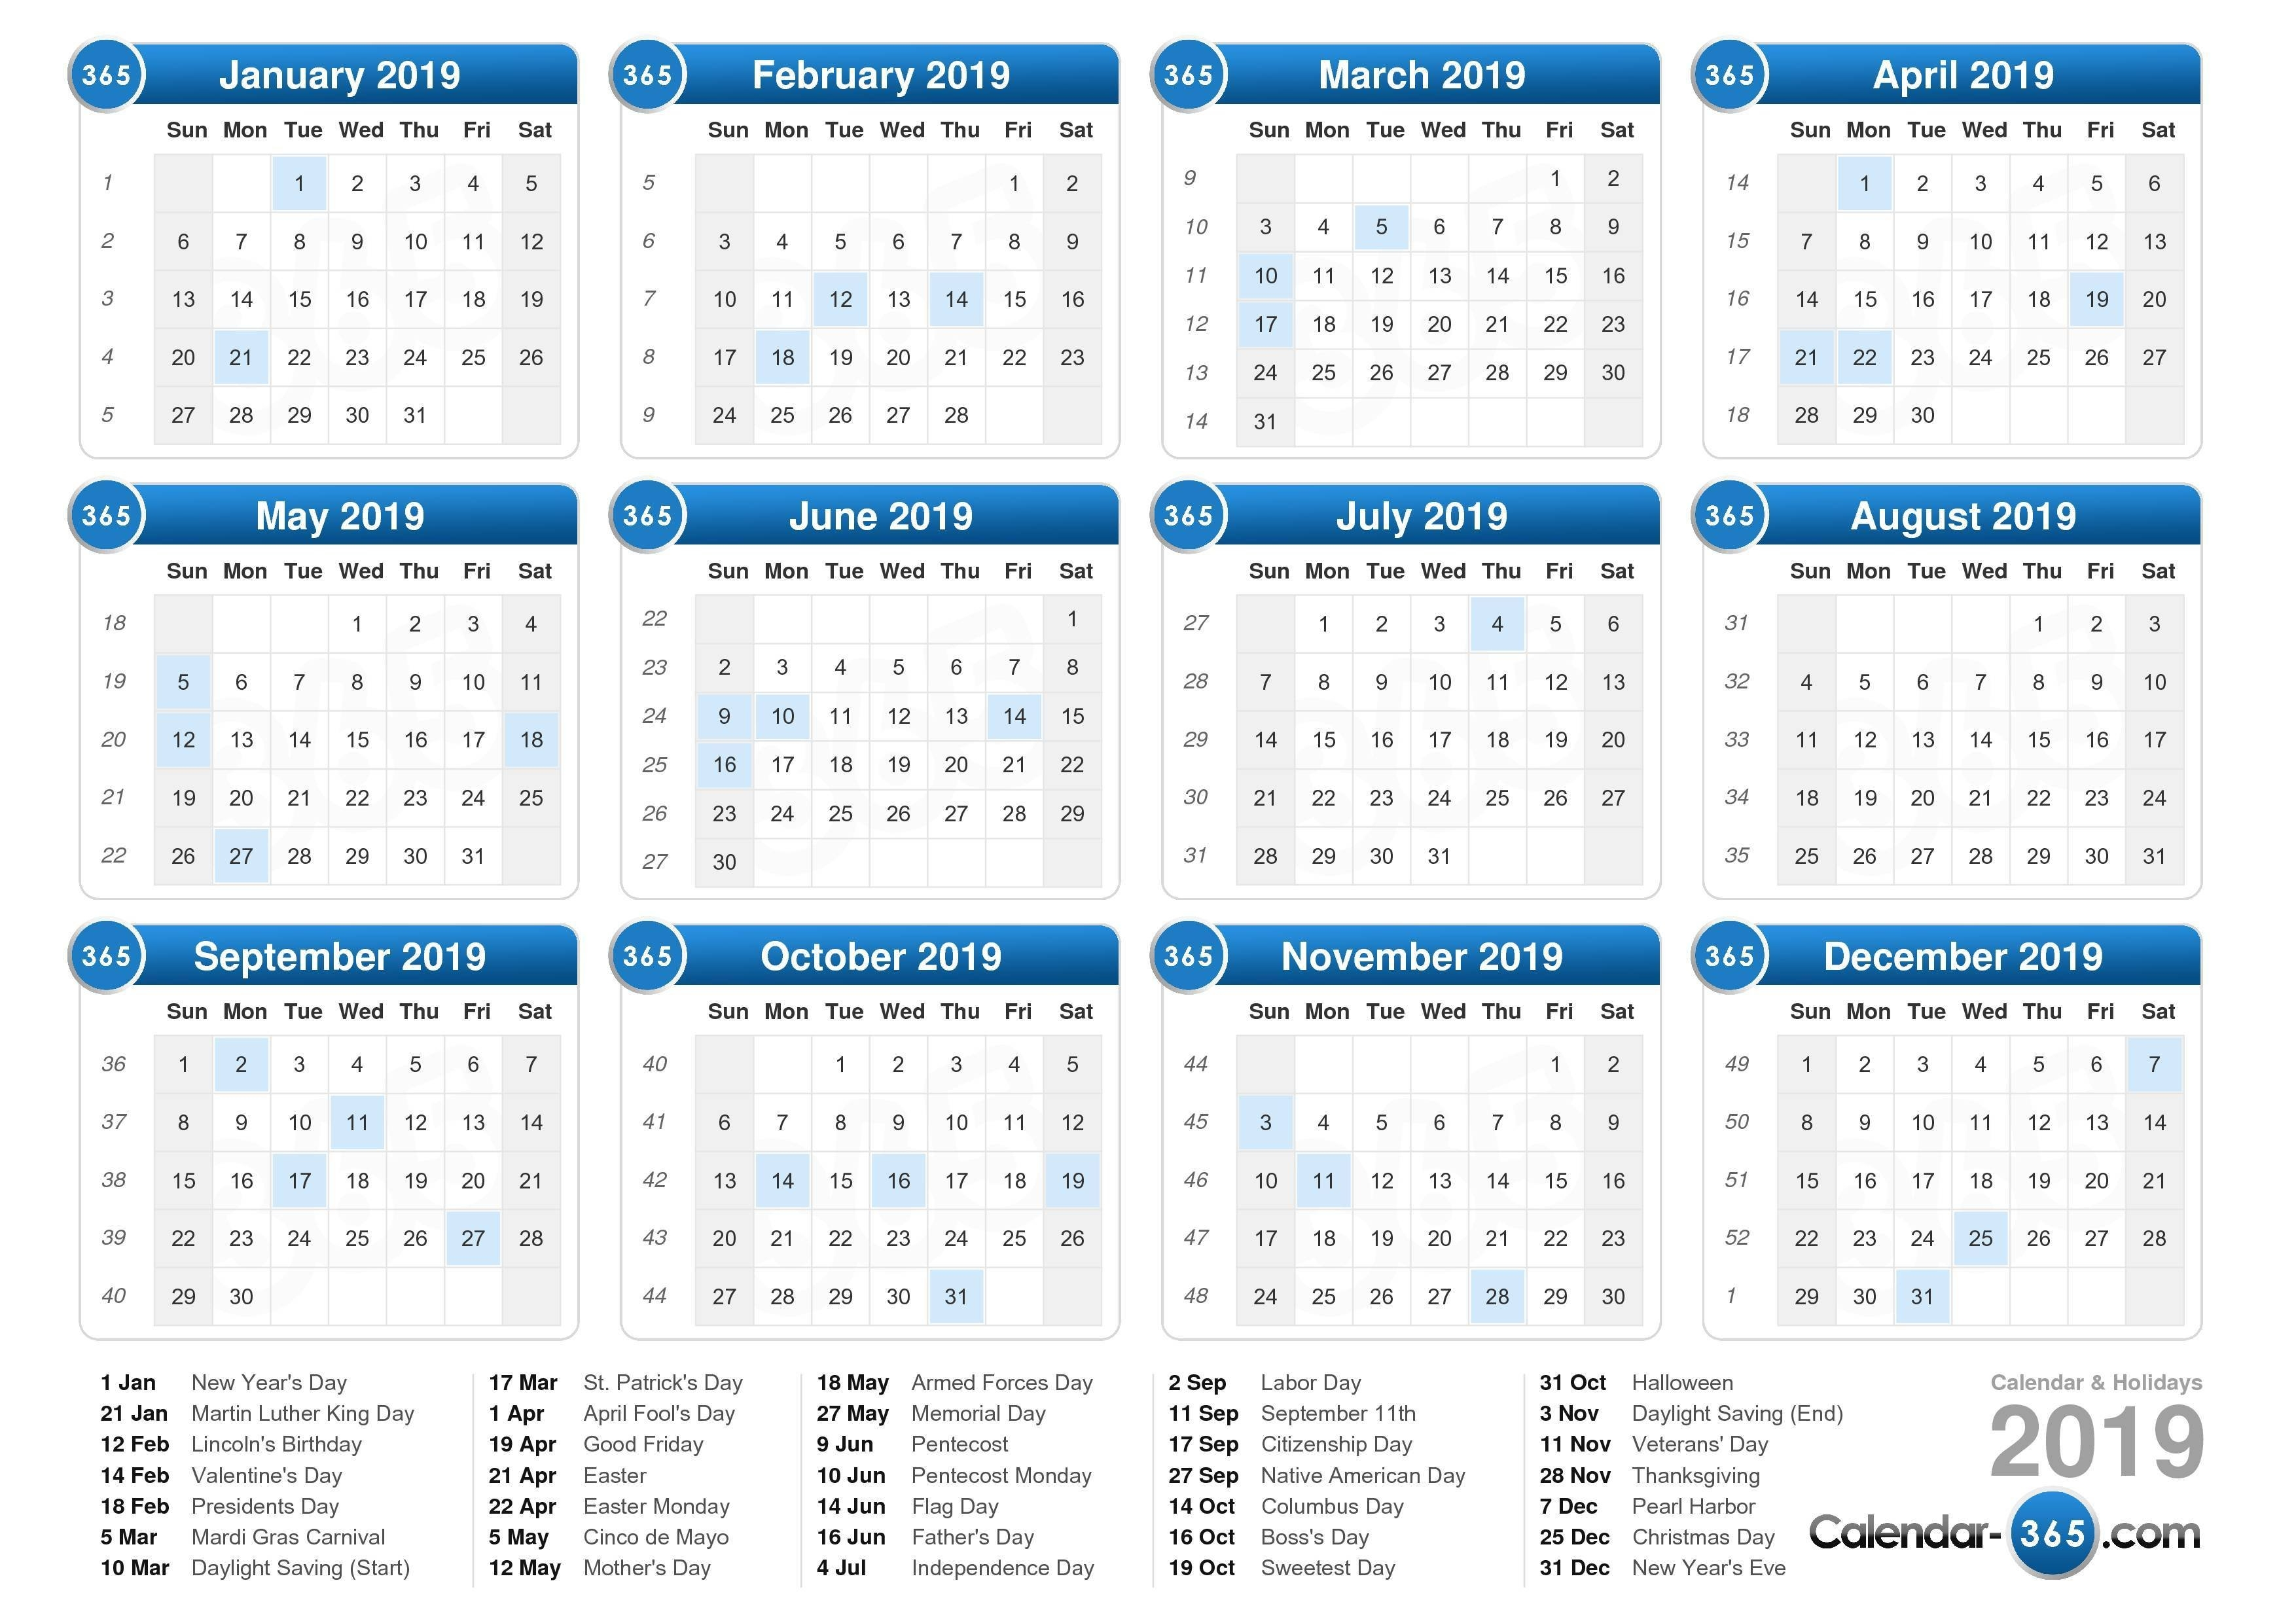 2019 Calendar Calendar 2019 In Weeks